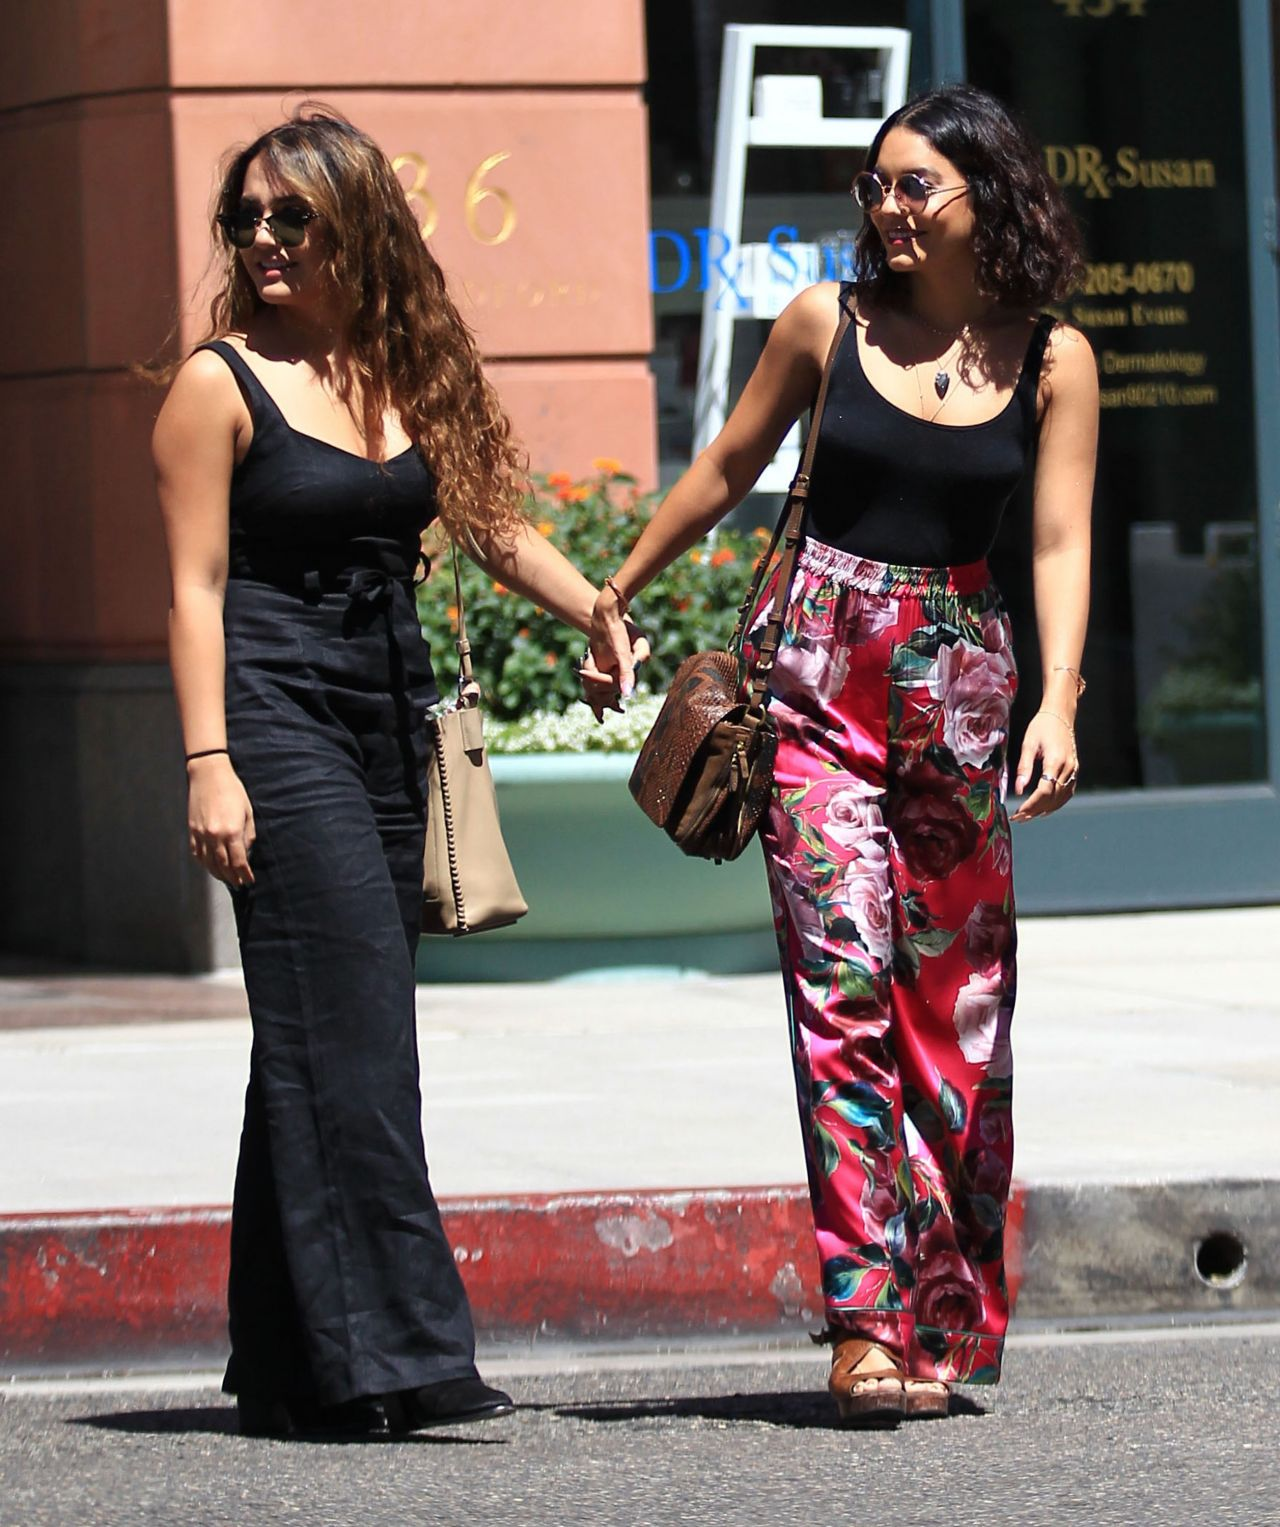 574c5840db8 Vanessa Hudgens Summer Street Style - Out in Beverly Hills 8 15 2016